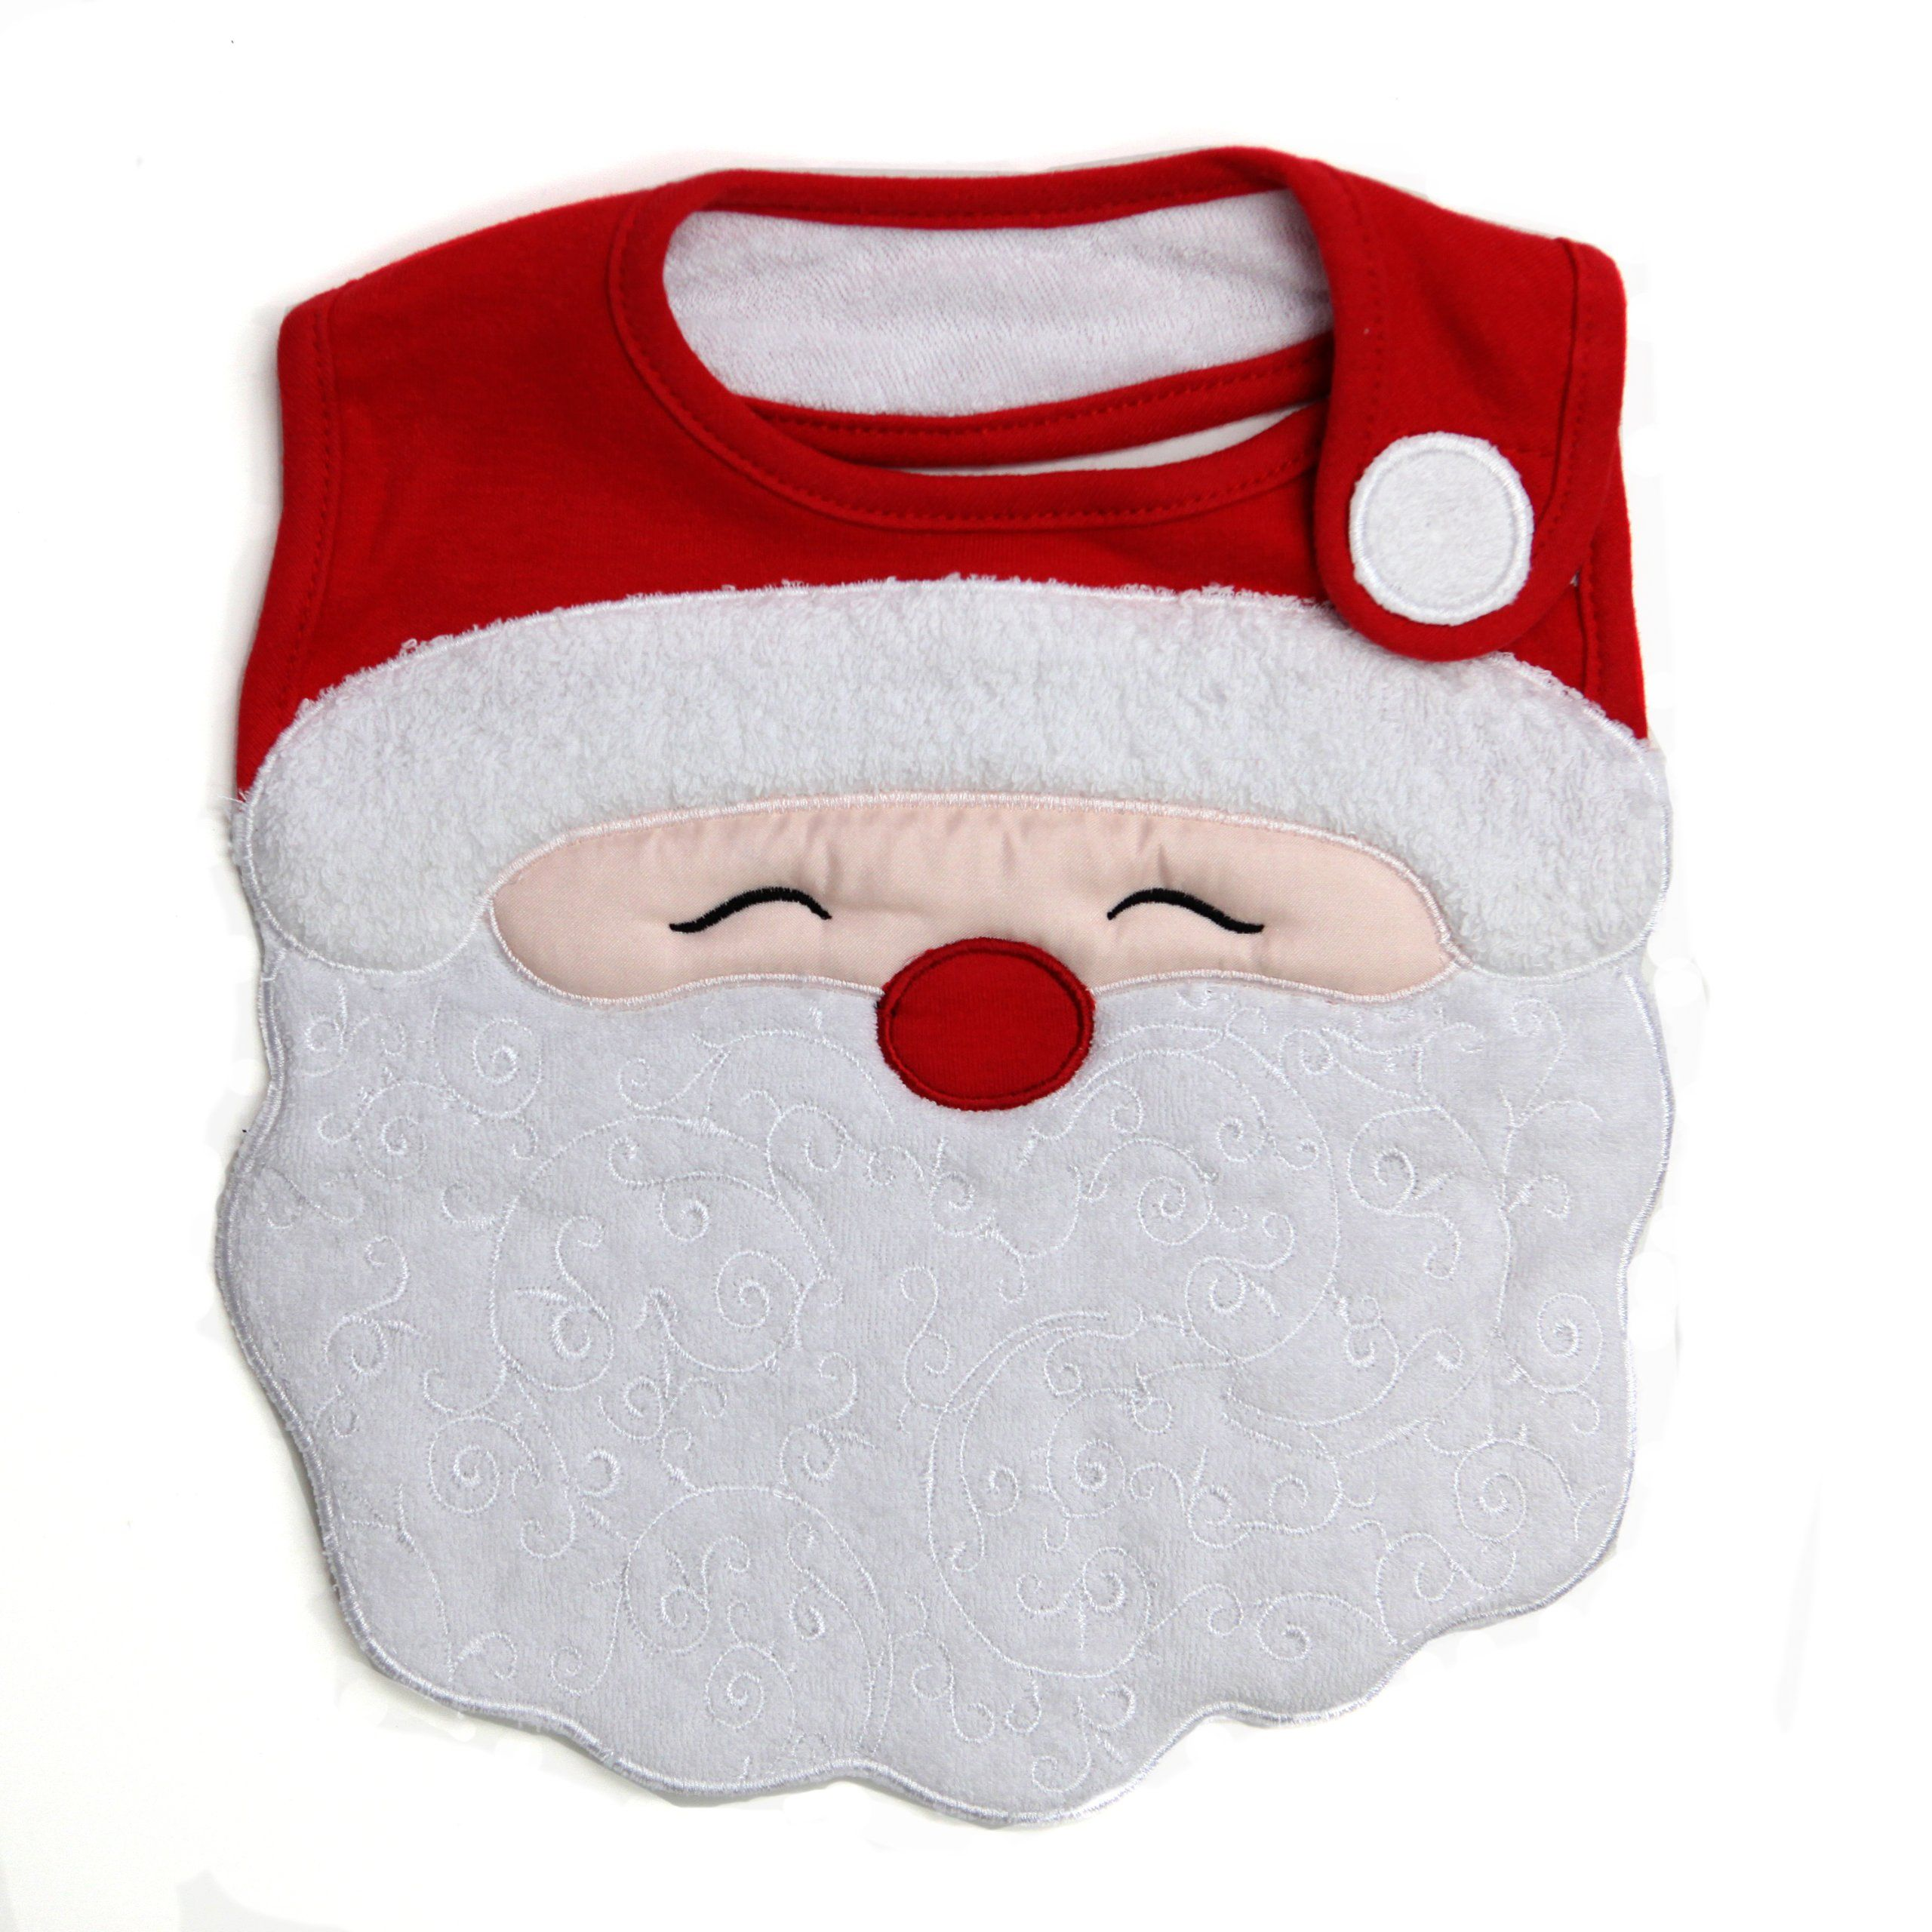 Santa's Face Side-Close Feeder Bib, Frenchie Mini Couture. Just in time for Christmas! (Additional styles available, sold separately). 100% cotton with cute embroidery design. Machine washable. Soft, cozy and adorable. Comfortable and adjustable fit with velcro closure.